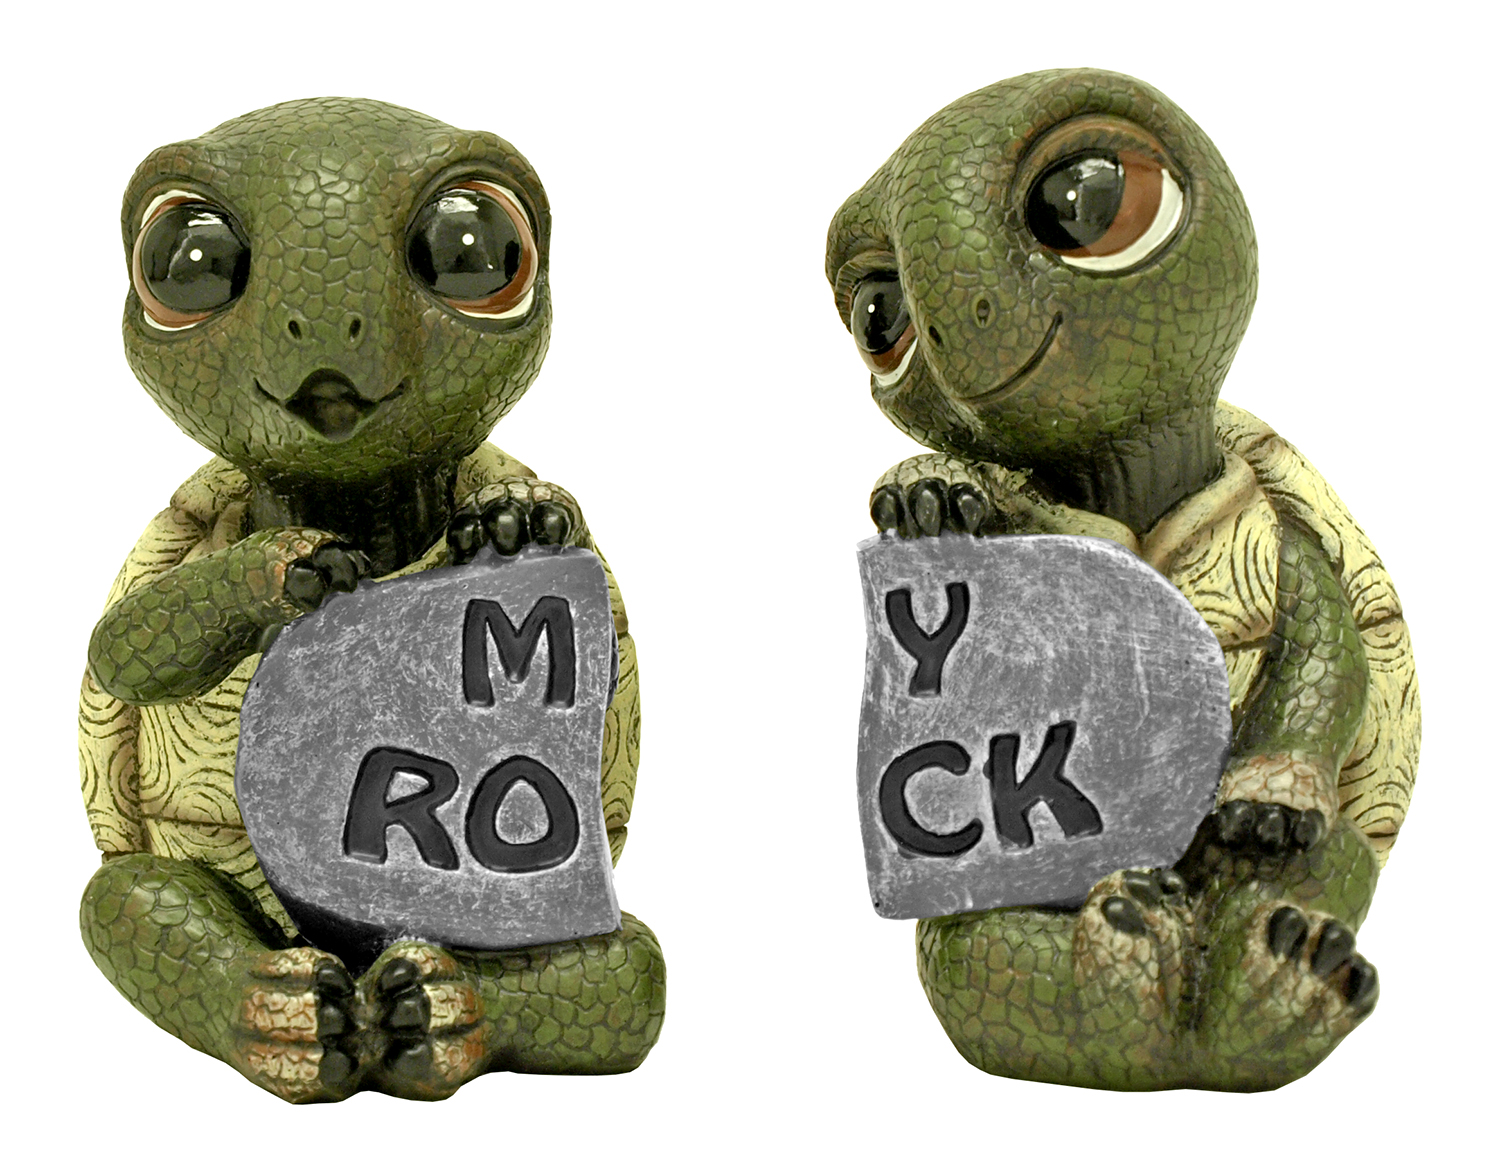 Rock Solid Love Turtle Statue Figurine